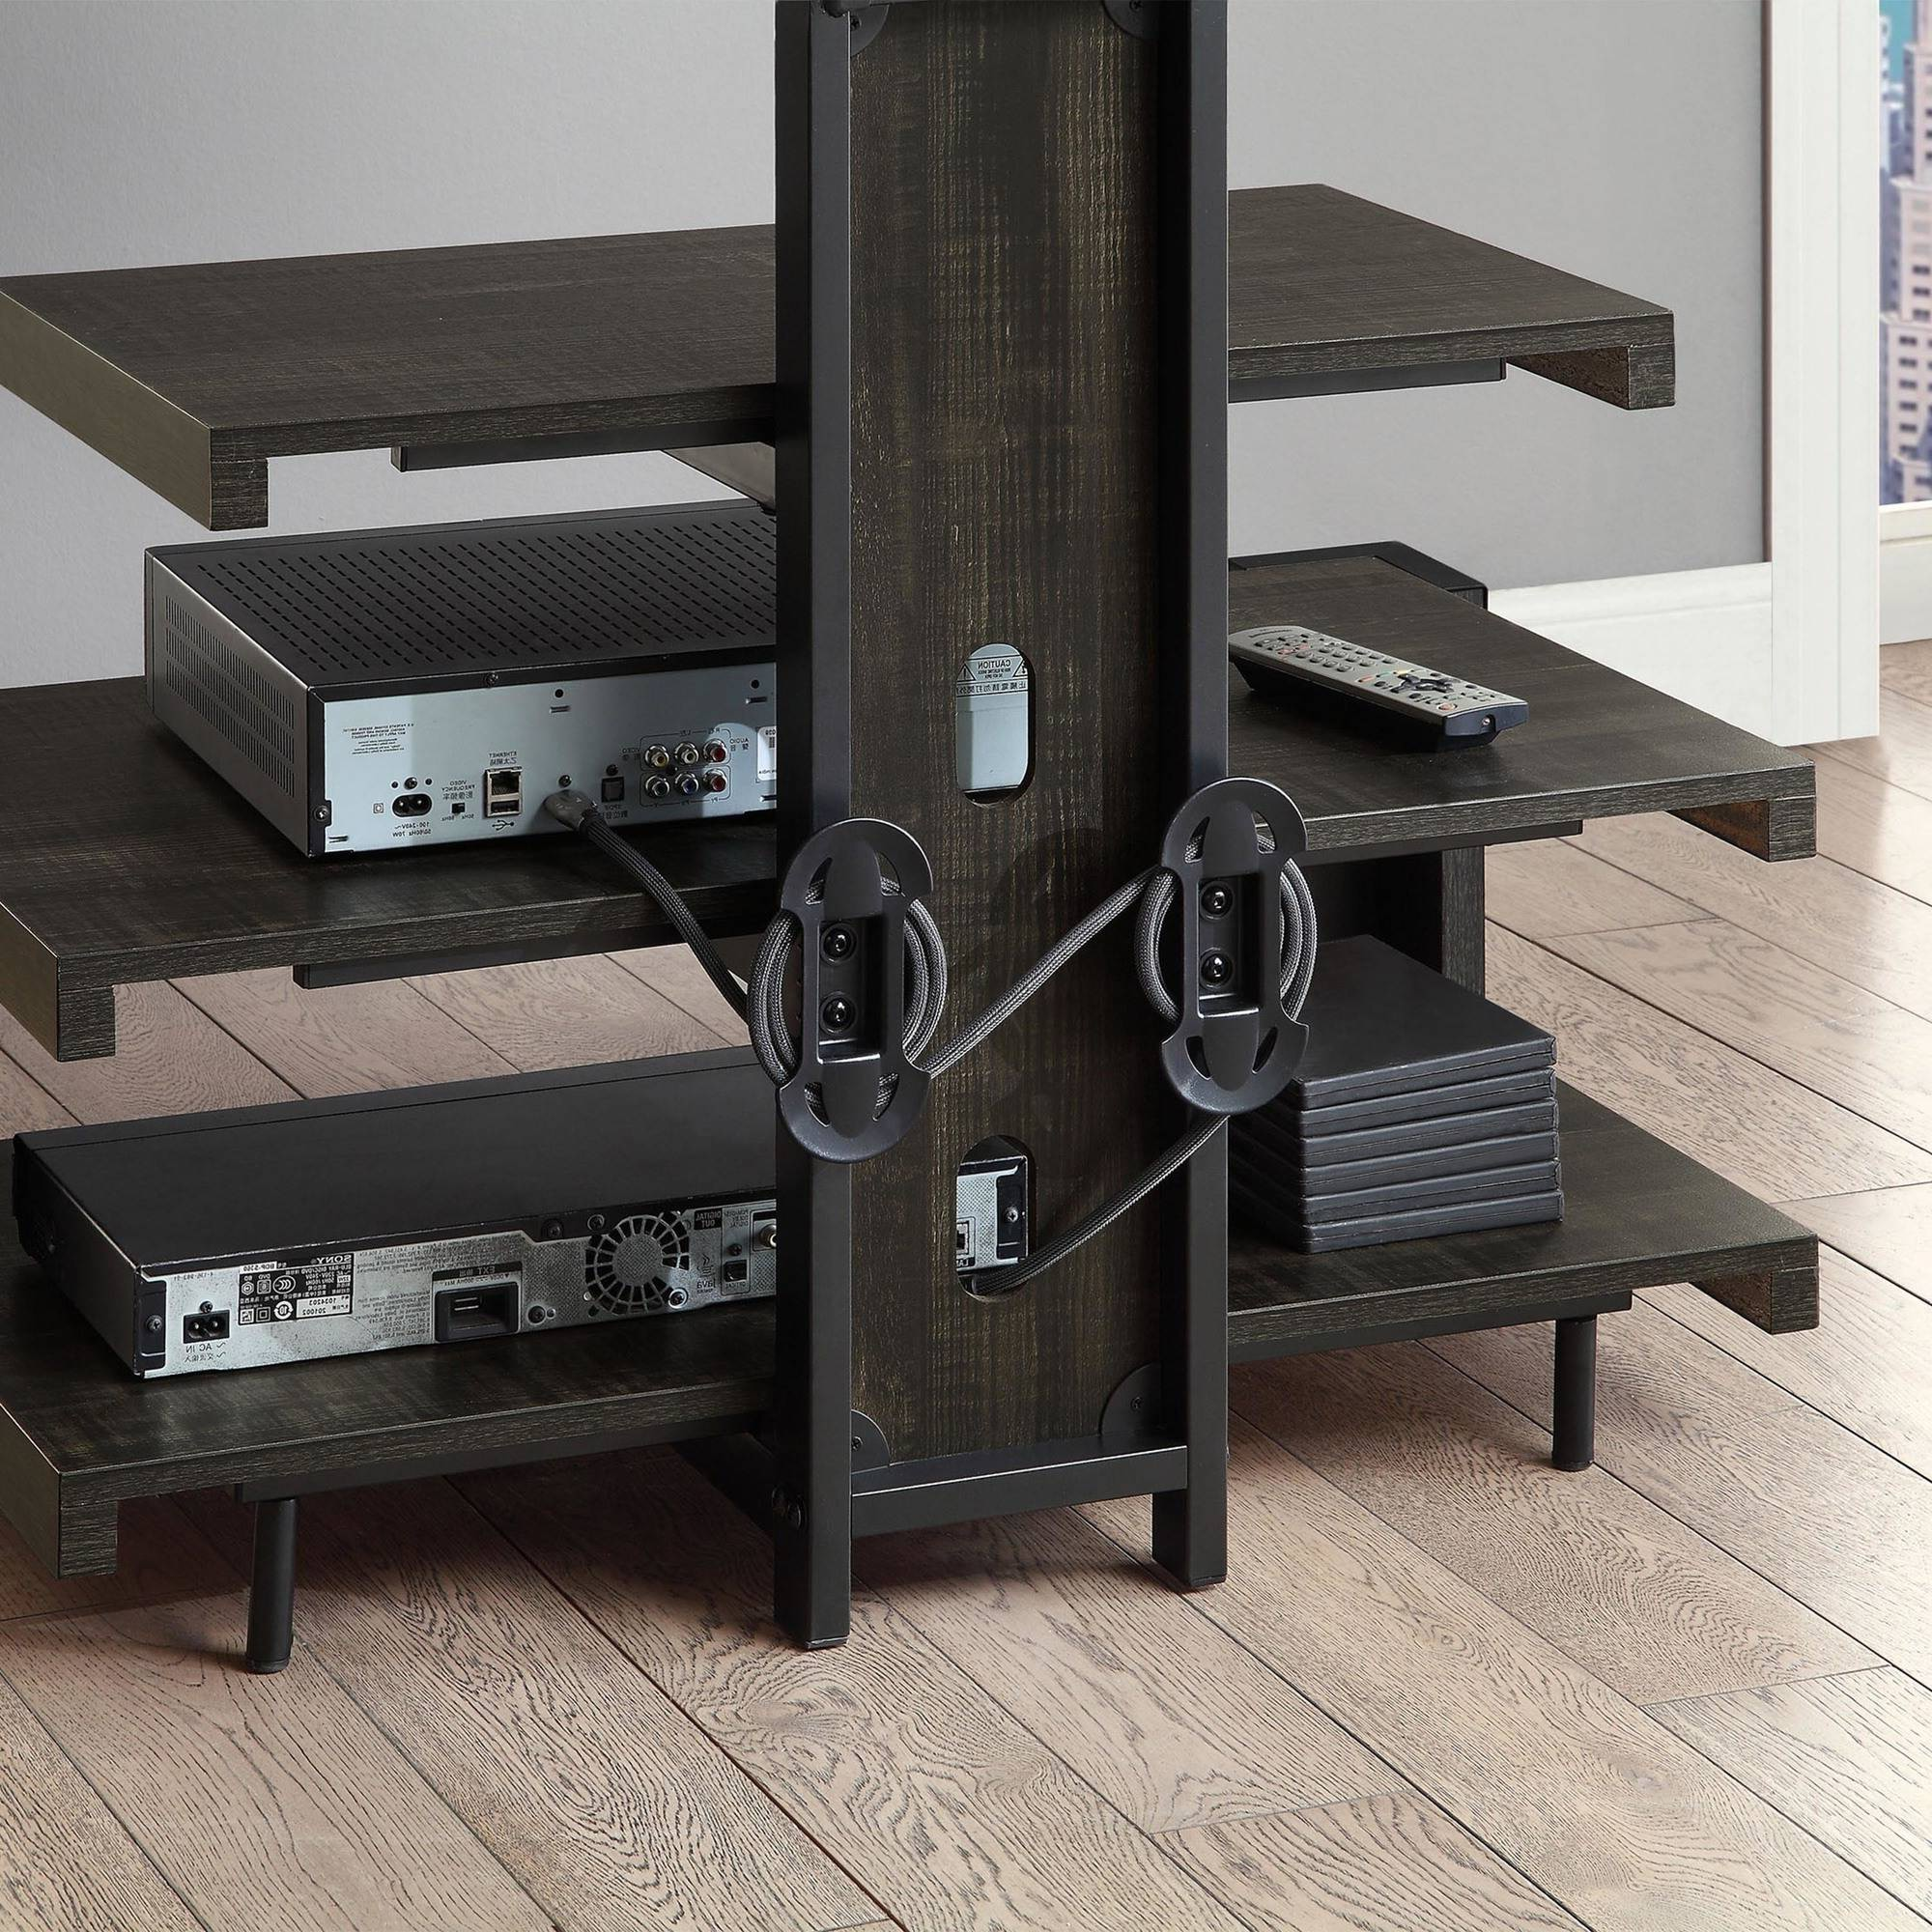 Whalen Shelf Tv Stands Cable Management (View 6 of 6)